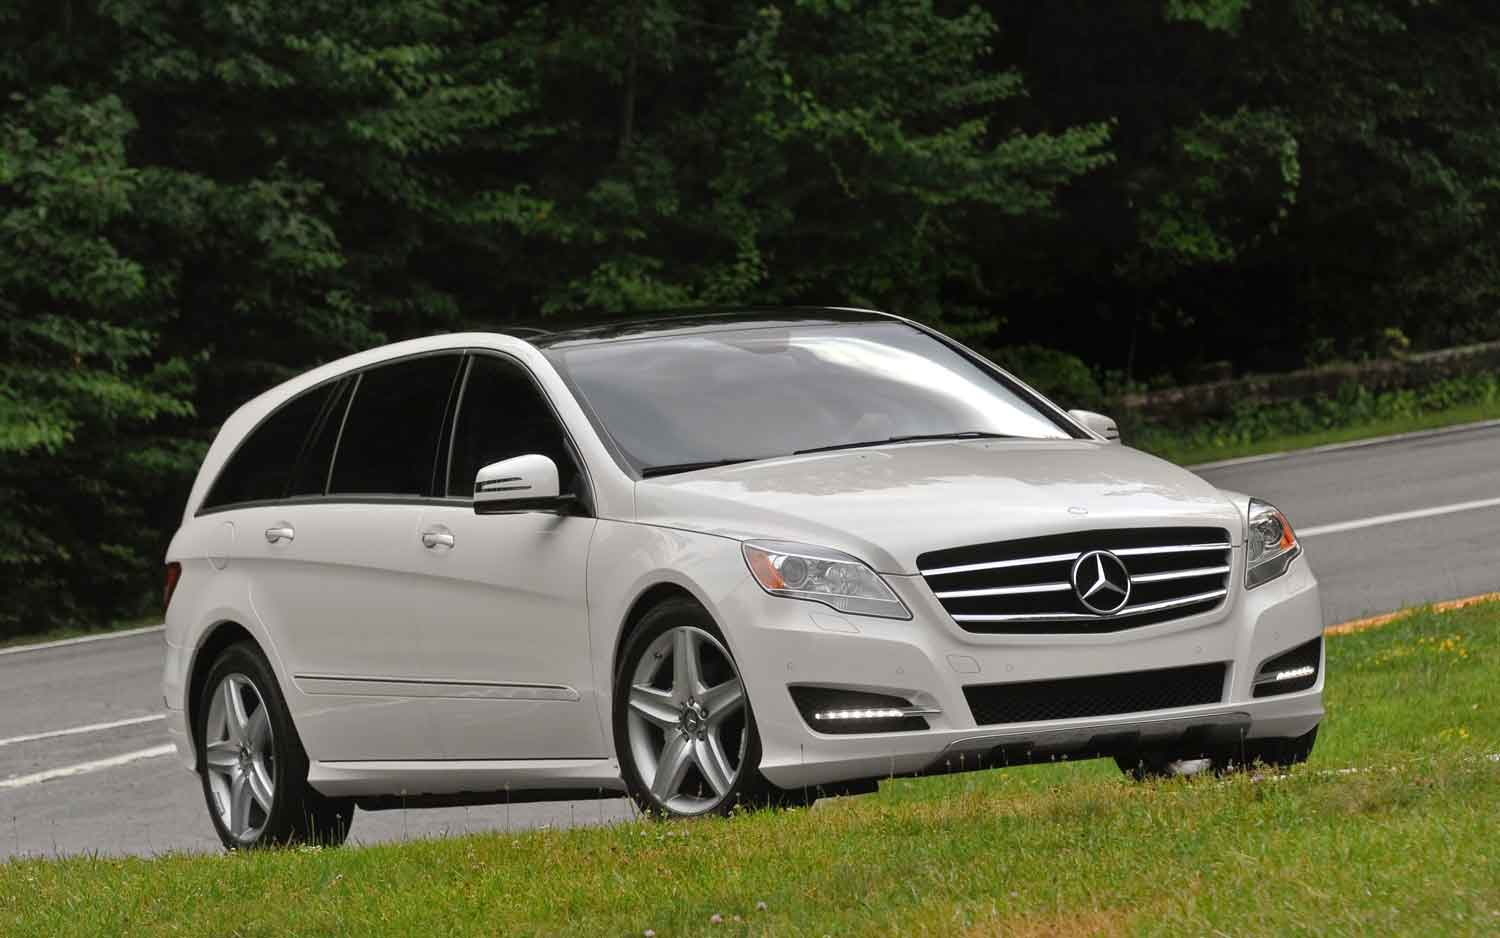 Delightful MT Then And Now: 2006 2012 Mercedes Benz R Class